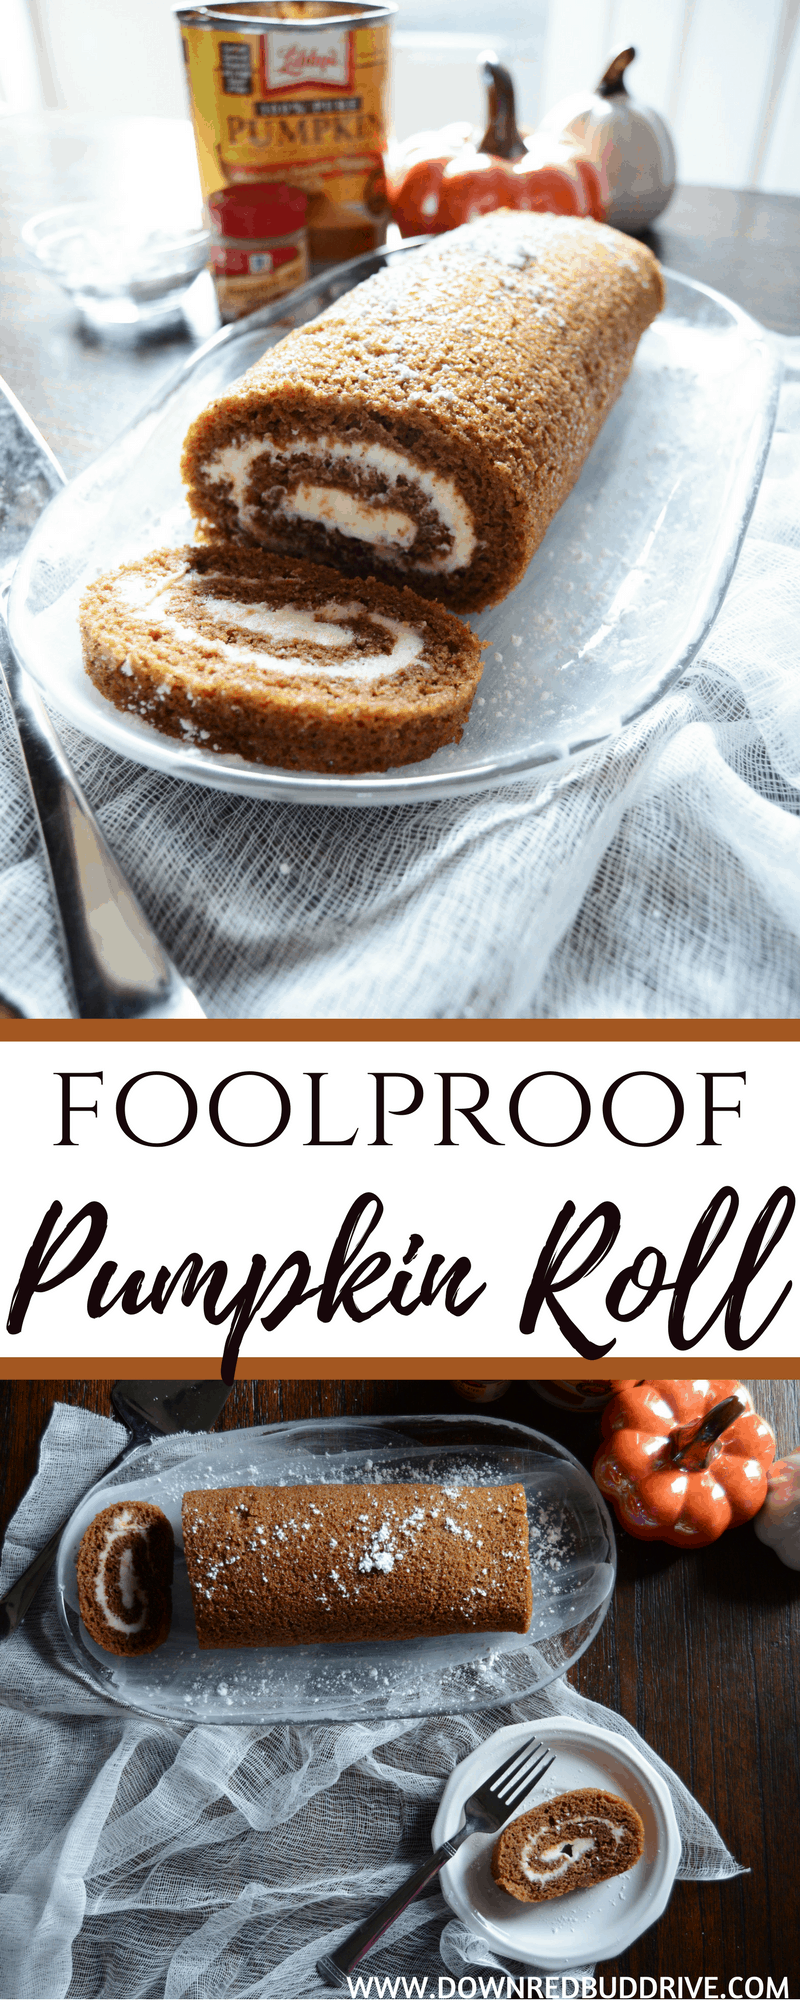 Foolproof Pumpkin Roll | Pumpkin Roll Recipe | Easy Pumpkin Roll | Best Pumpkin Roll Recipe | Pumpkin Recipe | Fall Dessert | Thanksgiving Dessert | Thanksgiving Recipe | Pumpkin Dessert |